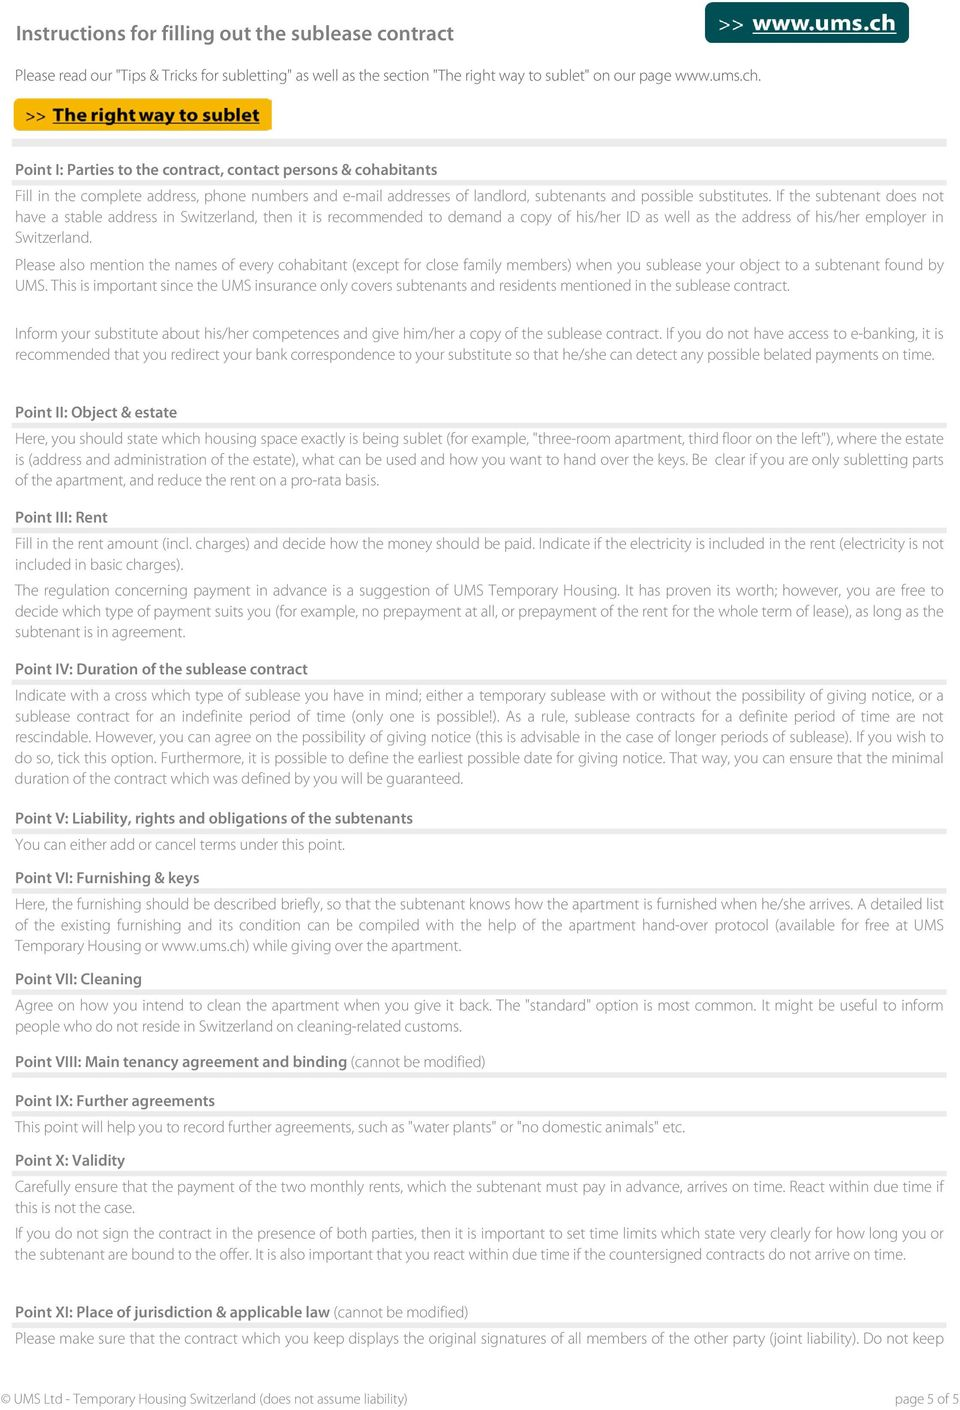 Free SUBLEASE CONTRACT template for Switzerland - PDF